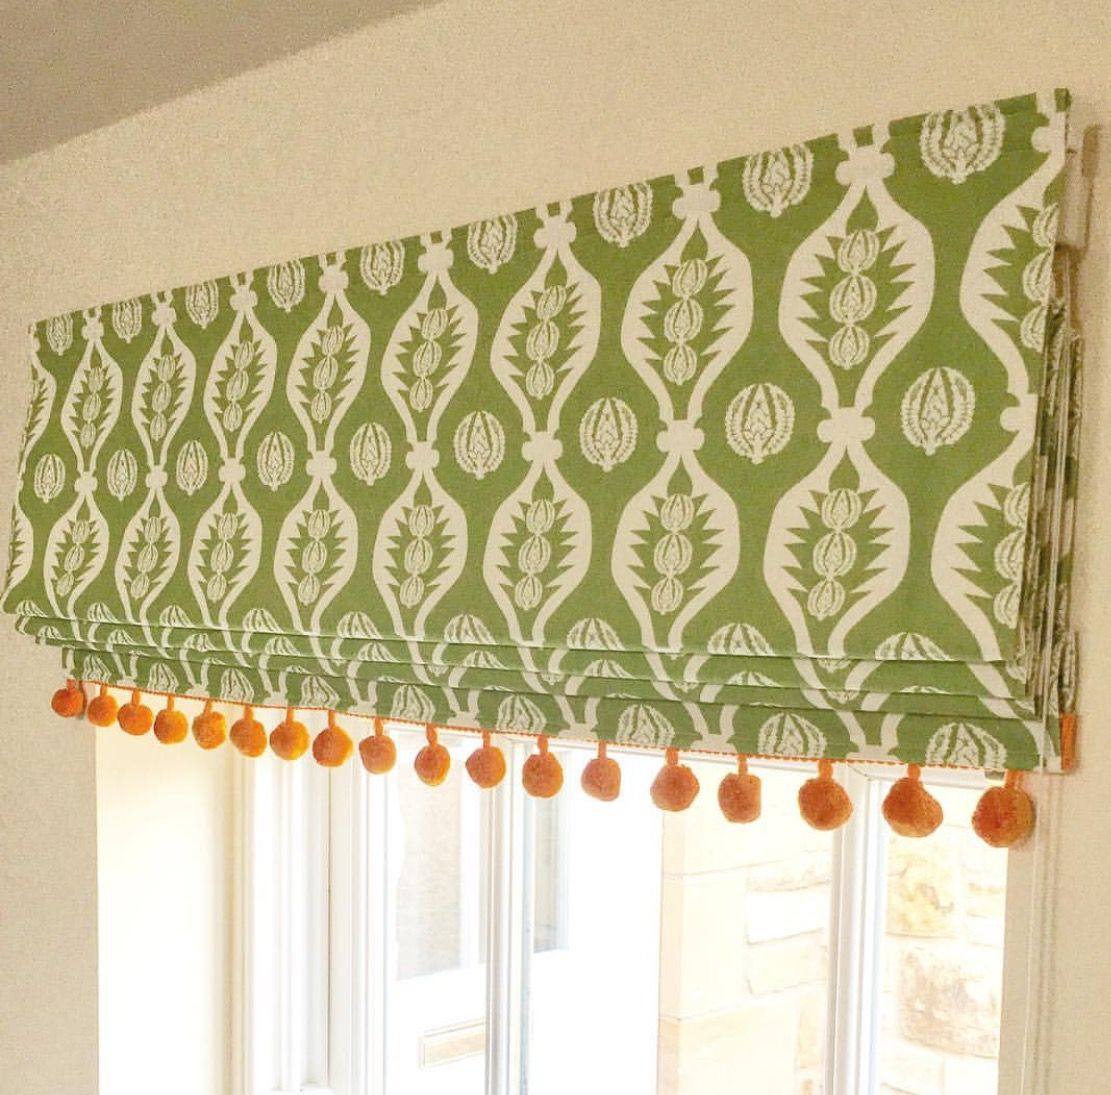 Fabulous Roman Blind from Charlotte Gaisford using Georgie Girl ...